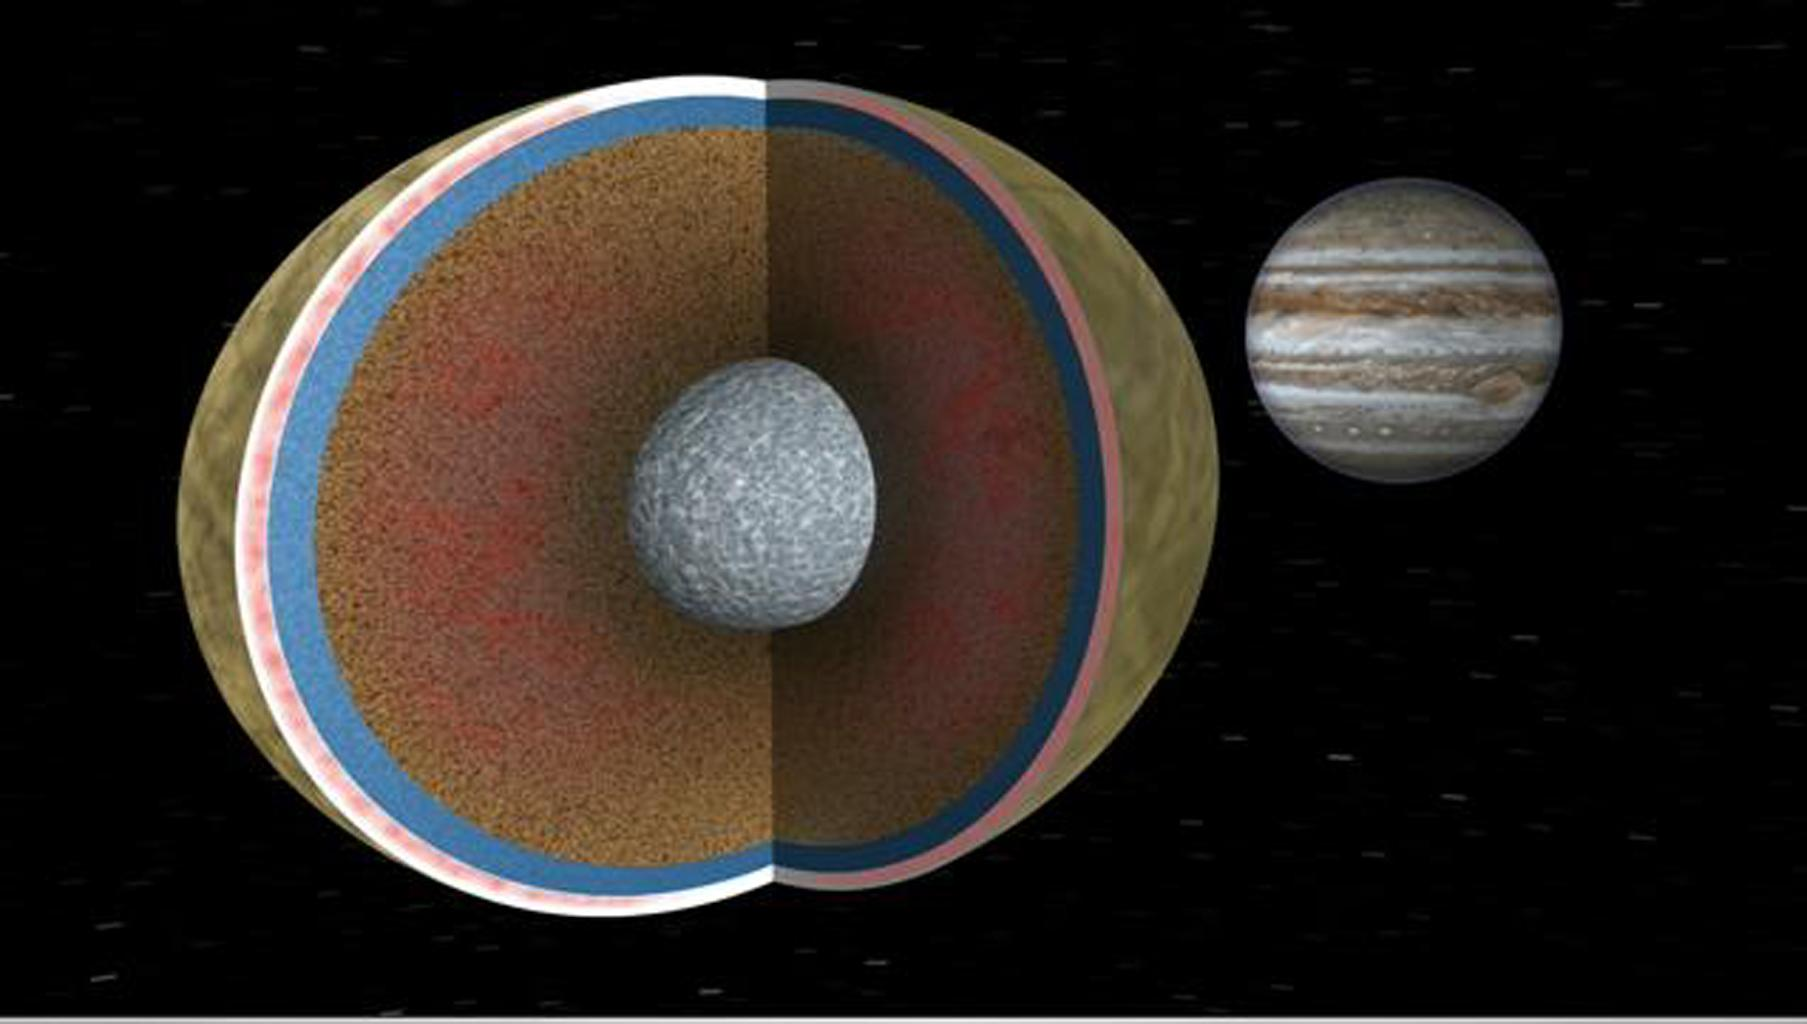 In this image, Europa is seen in a cutaway view through two cycles of its 3.5 day orbit about the giant planet Jupiter. Like Earth, Europa is thought to have an iron core, a rocky mantle and a surface ocean of salty water. Animation available at the Photo